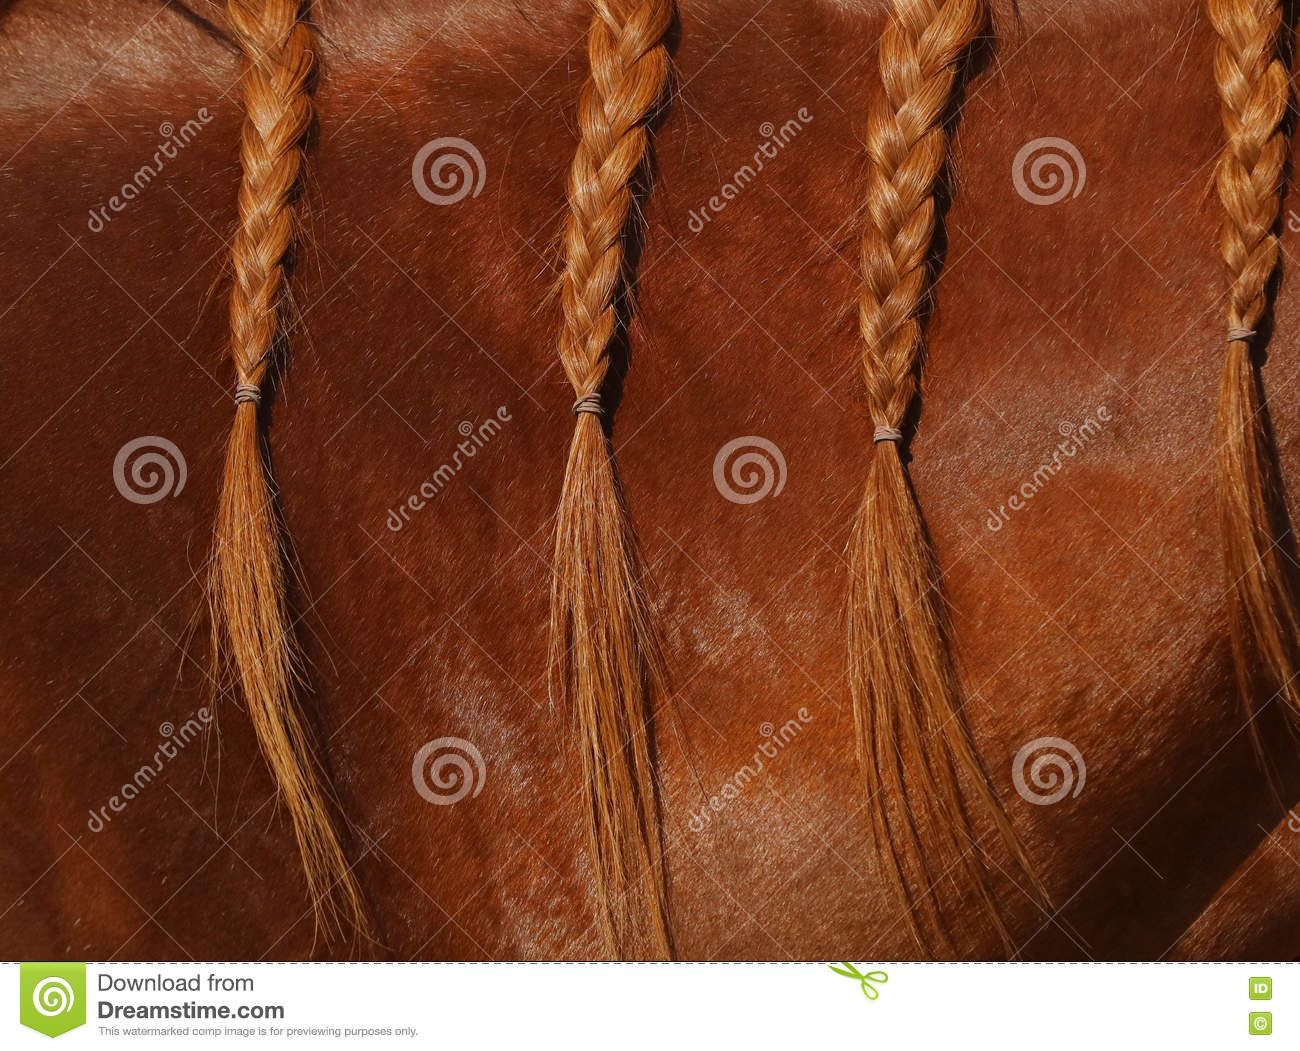 Download A Close Up View Of The Mane Of A Sorrel Horse In Braids. Stock Image - Image of mammal, detail: 80170345